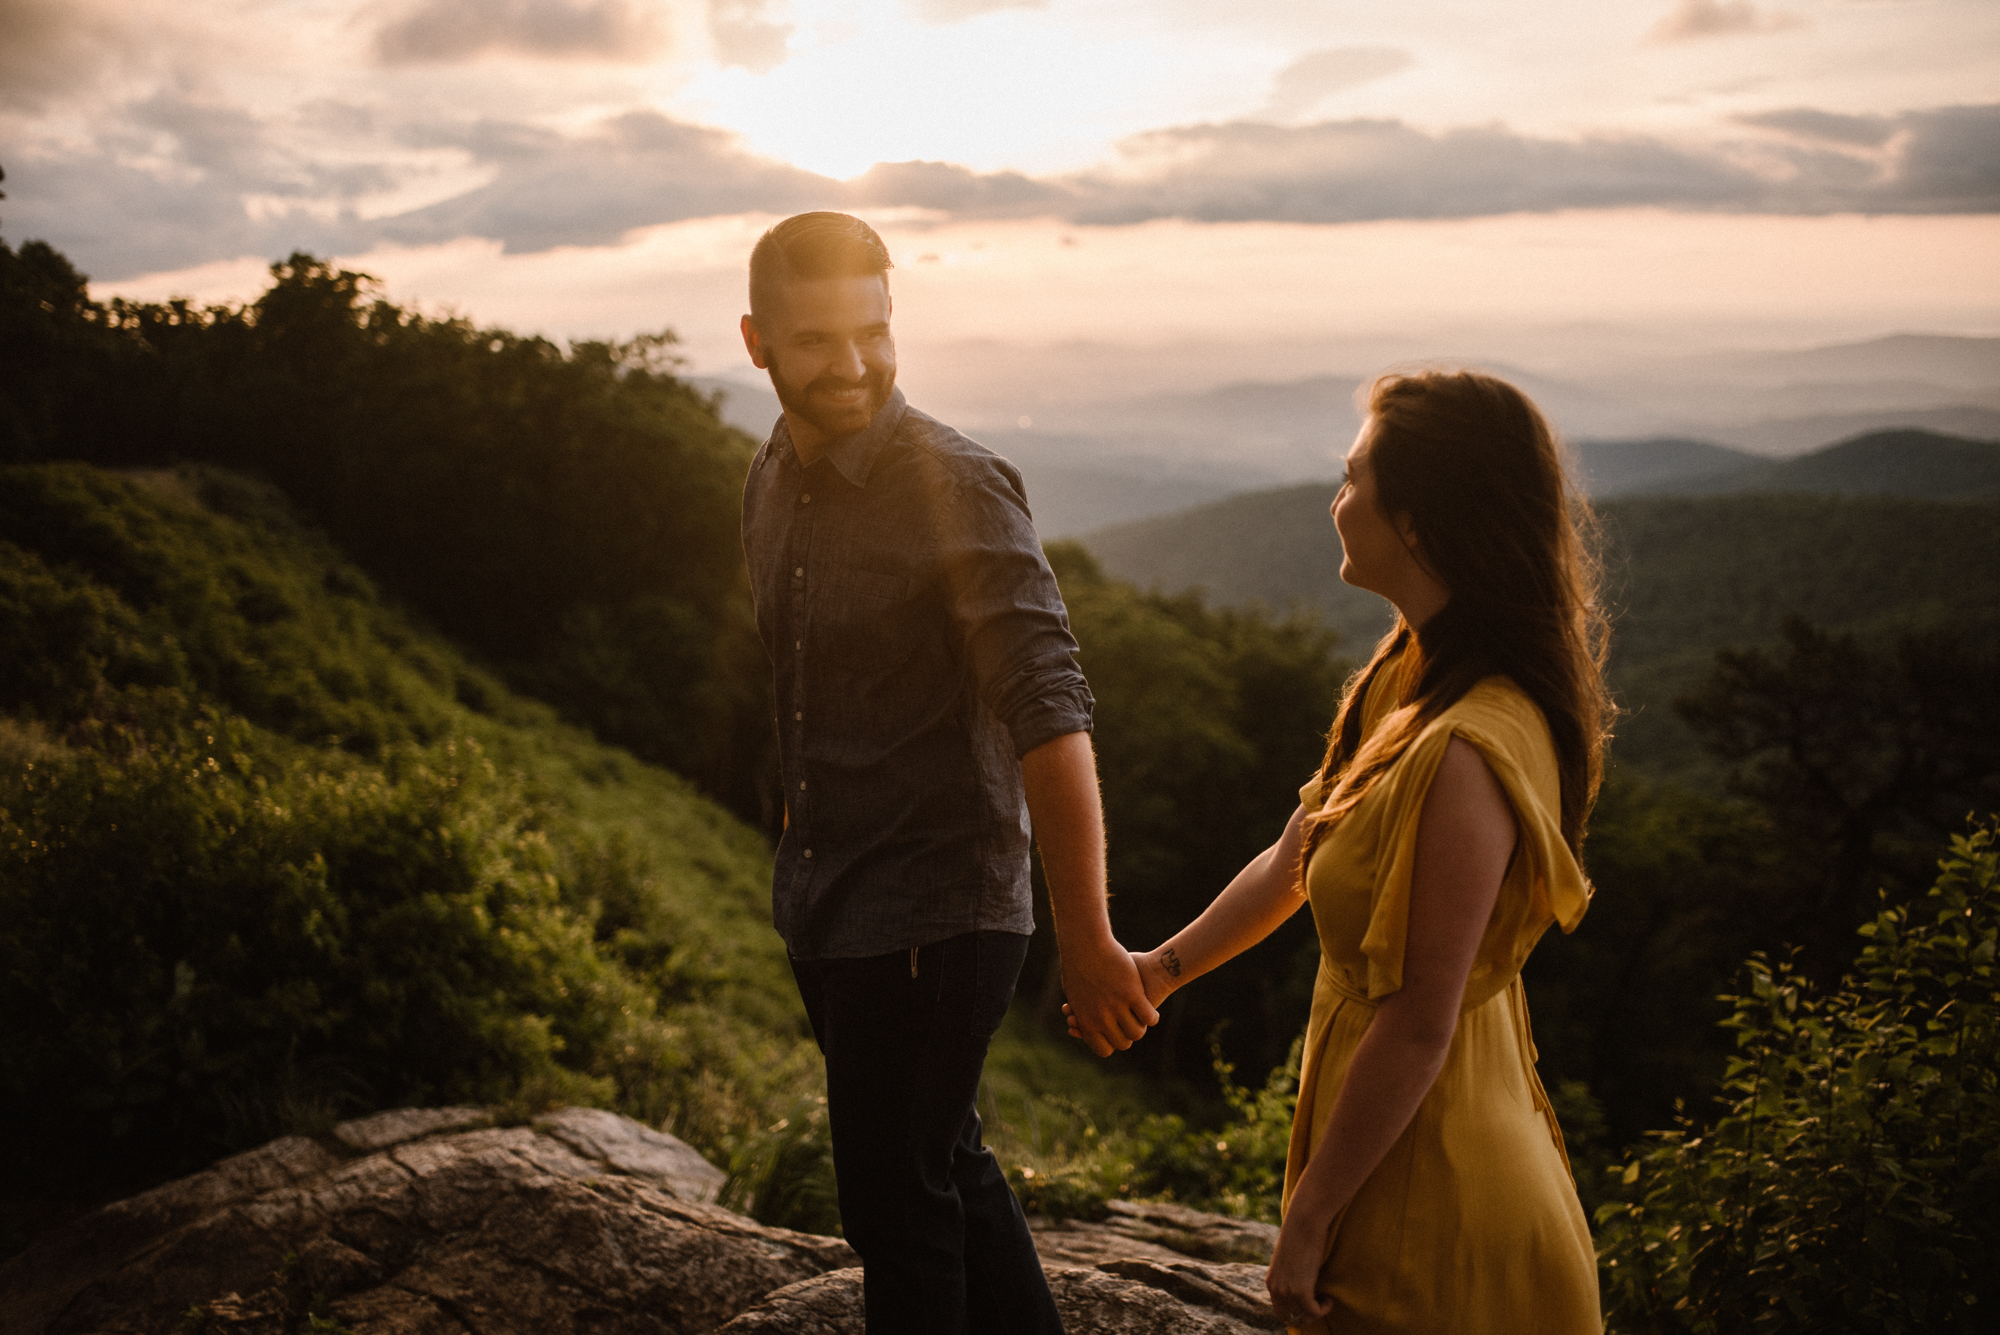 Camryn and Larry Sunrise Engagement Session in Shenandoah National Park - Things to Do in Luray Virginia - Adventurous Couple Photo Shoot White Sails Creative_12.jpg